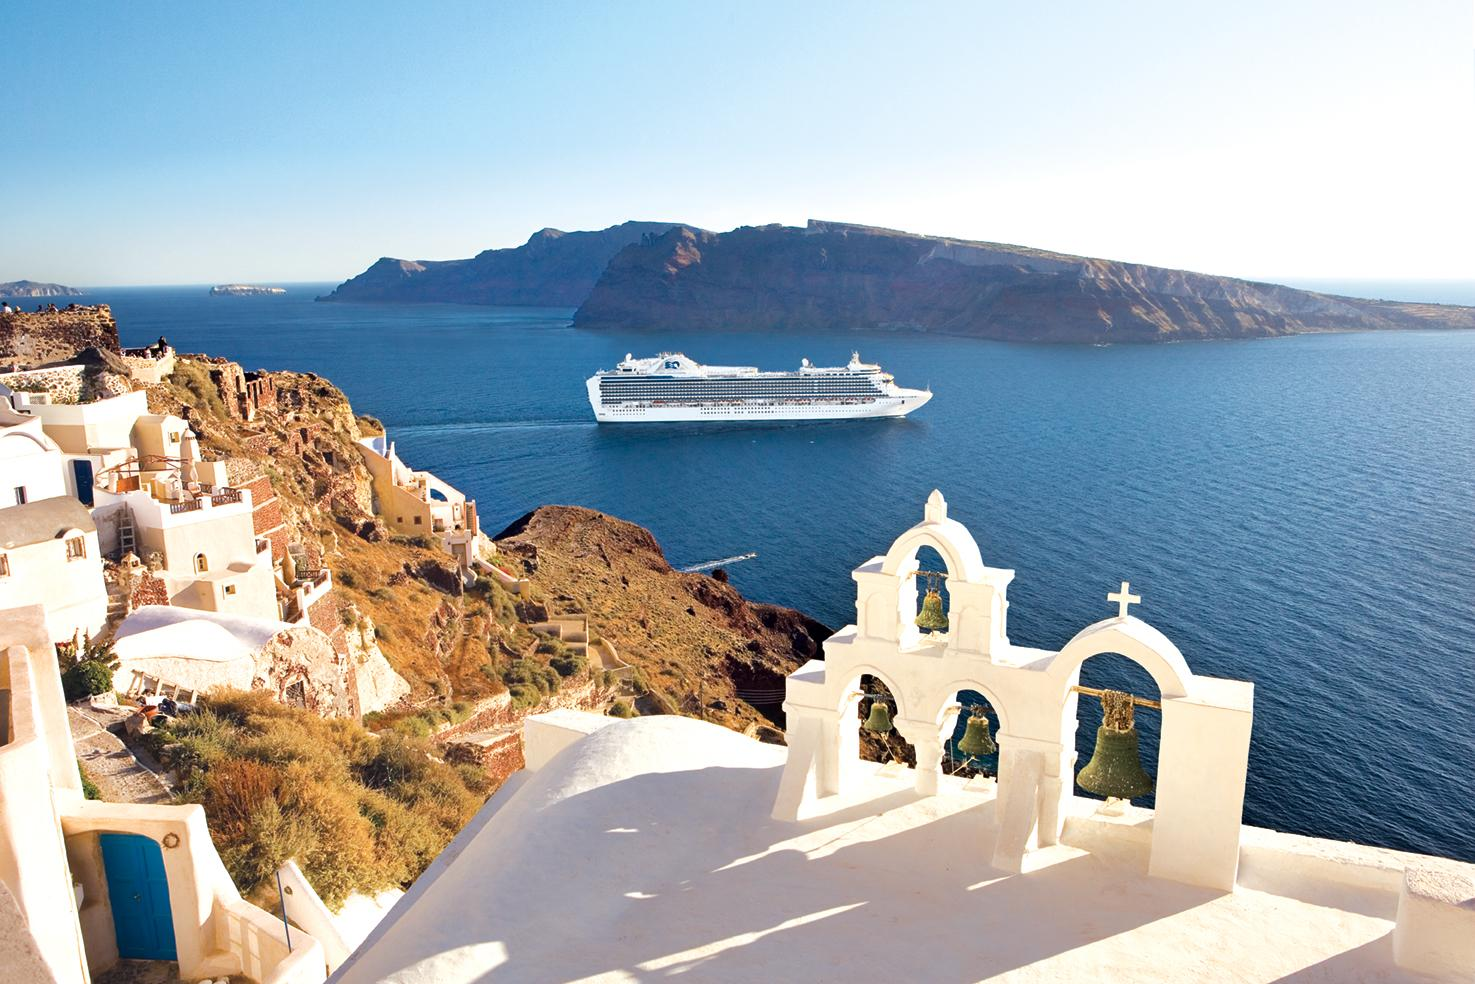 Views of Santorini and Greek islands with Mediterranean cruises